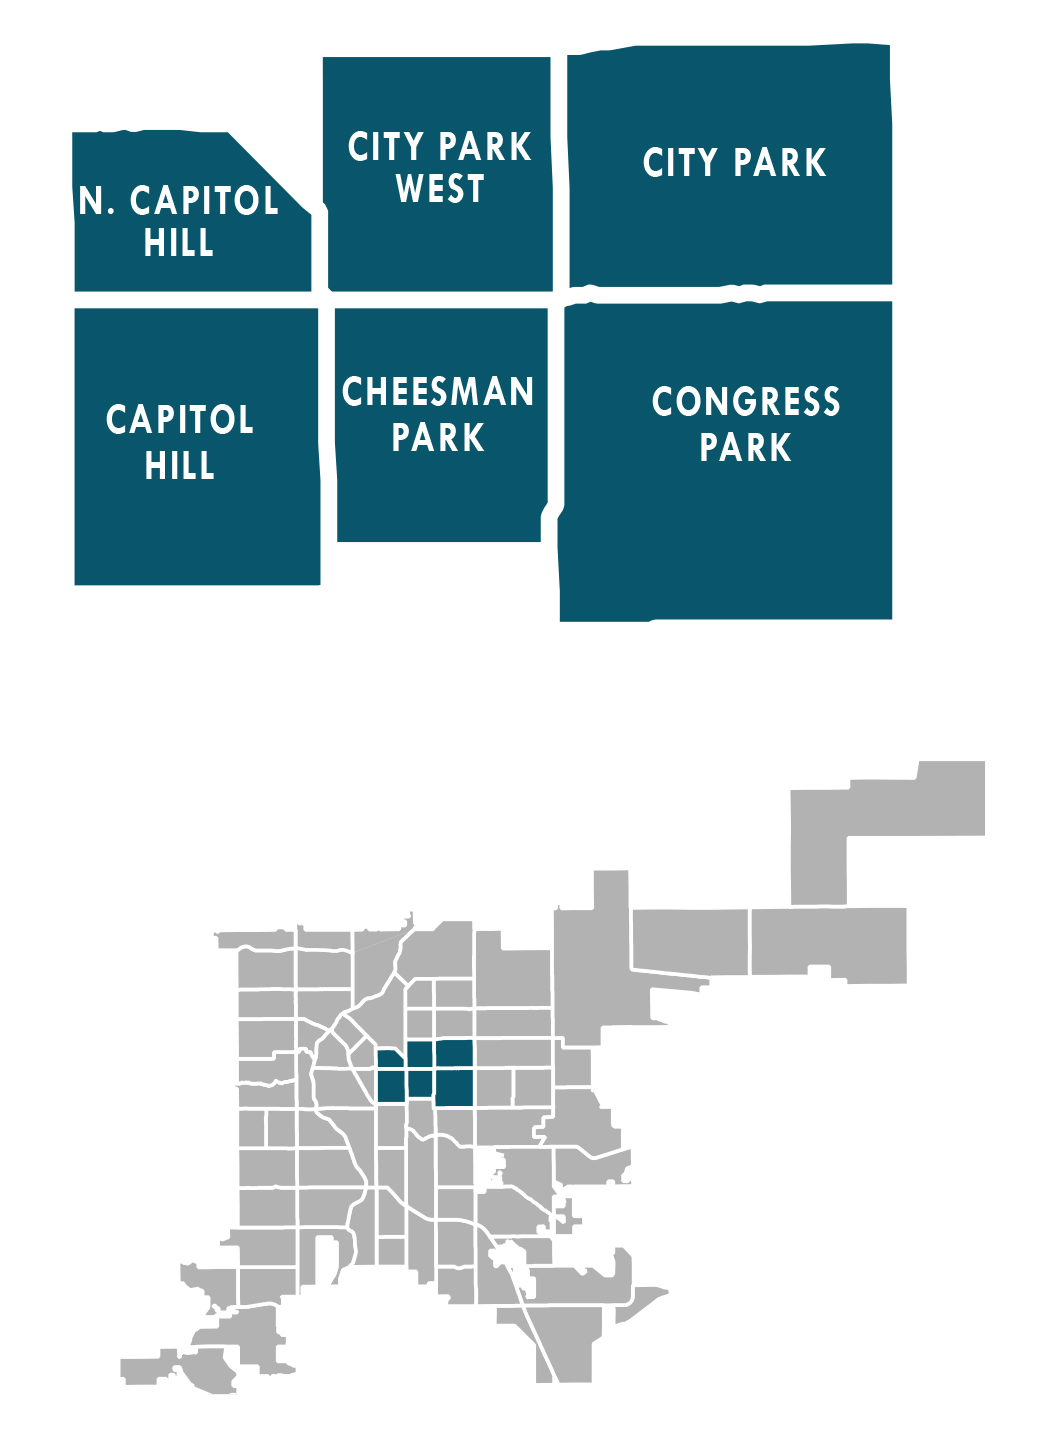 Map showing east central planning area neighborhoods: North Capitol Hill, Capitol Hill, City Park West, Cheesman Park, City Park and Congress Park